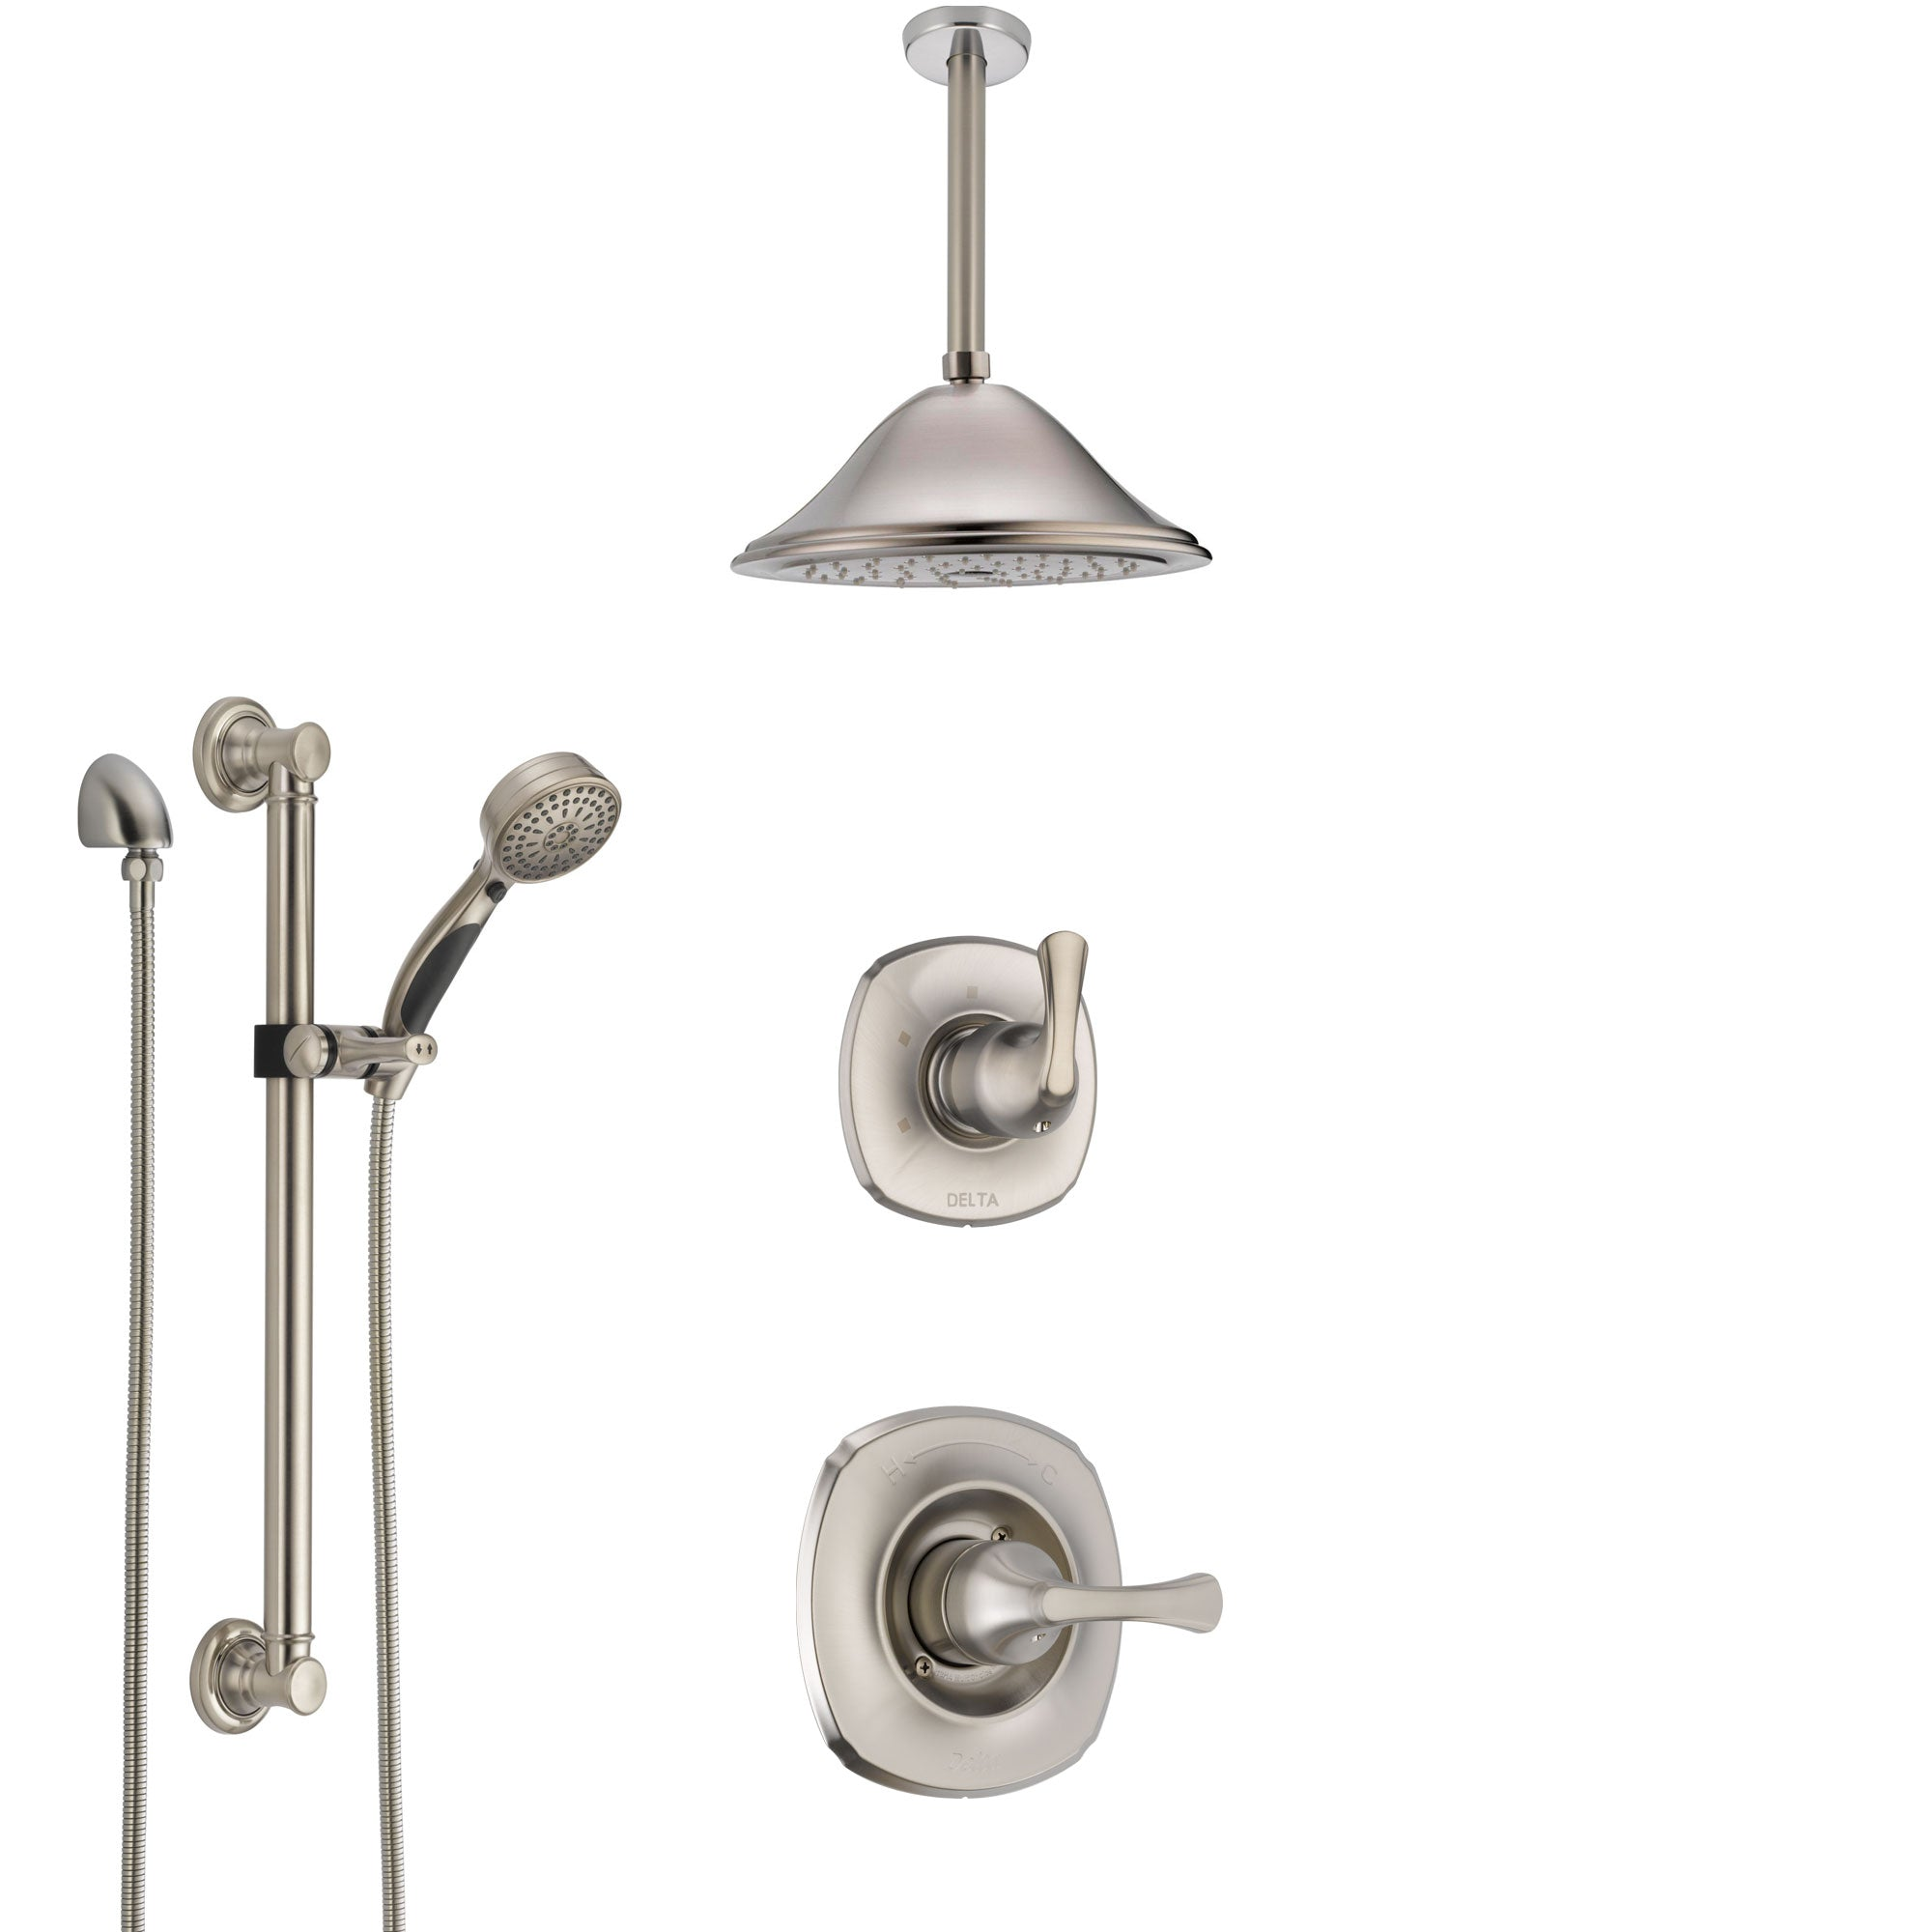 Delta Addison Stainless Steel Finish Shower System with Control Handle, Diverter, Ceiling Mount Showerhead, and Hand Shower with Grab Bar SS1492SS8